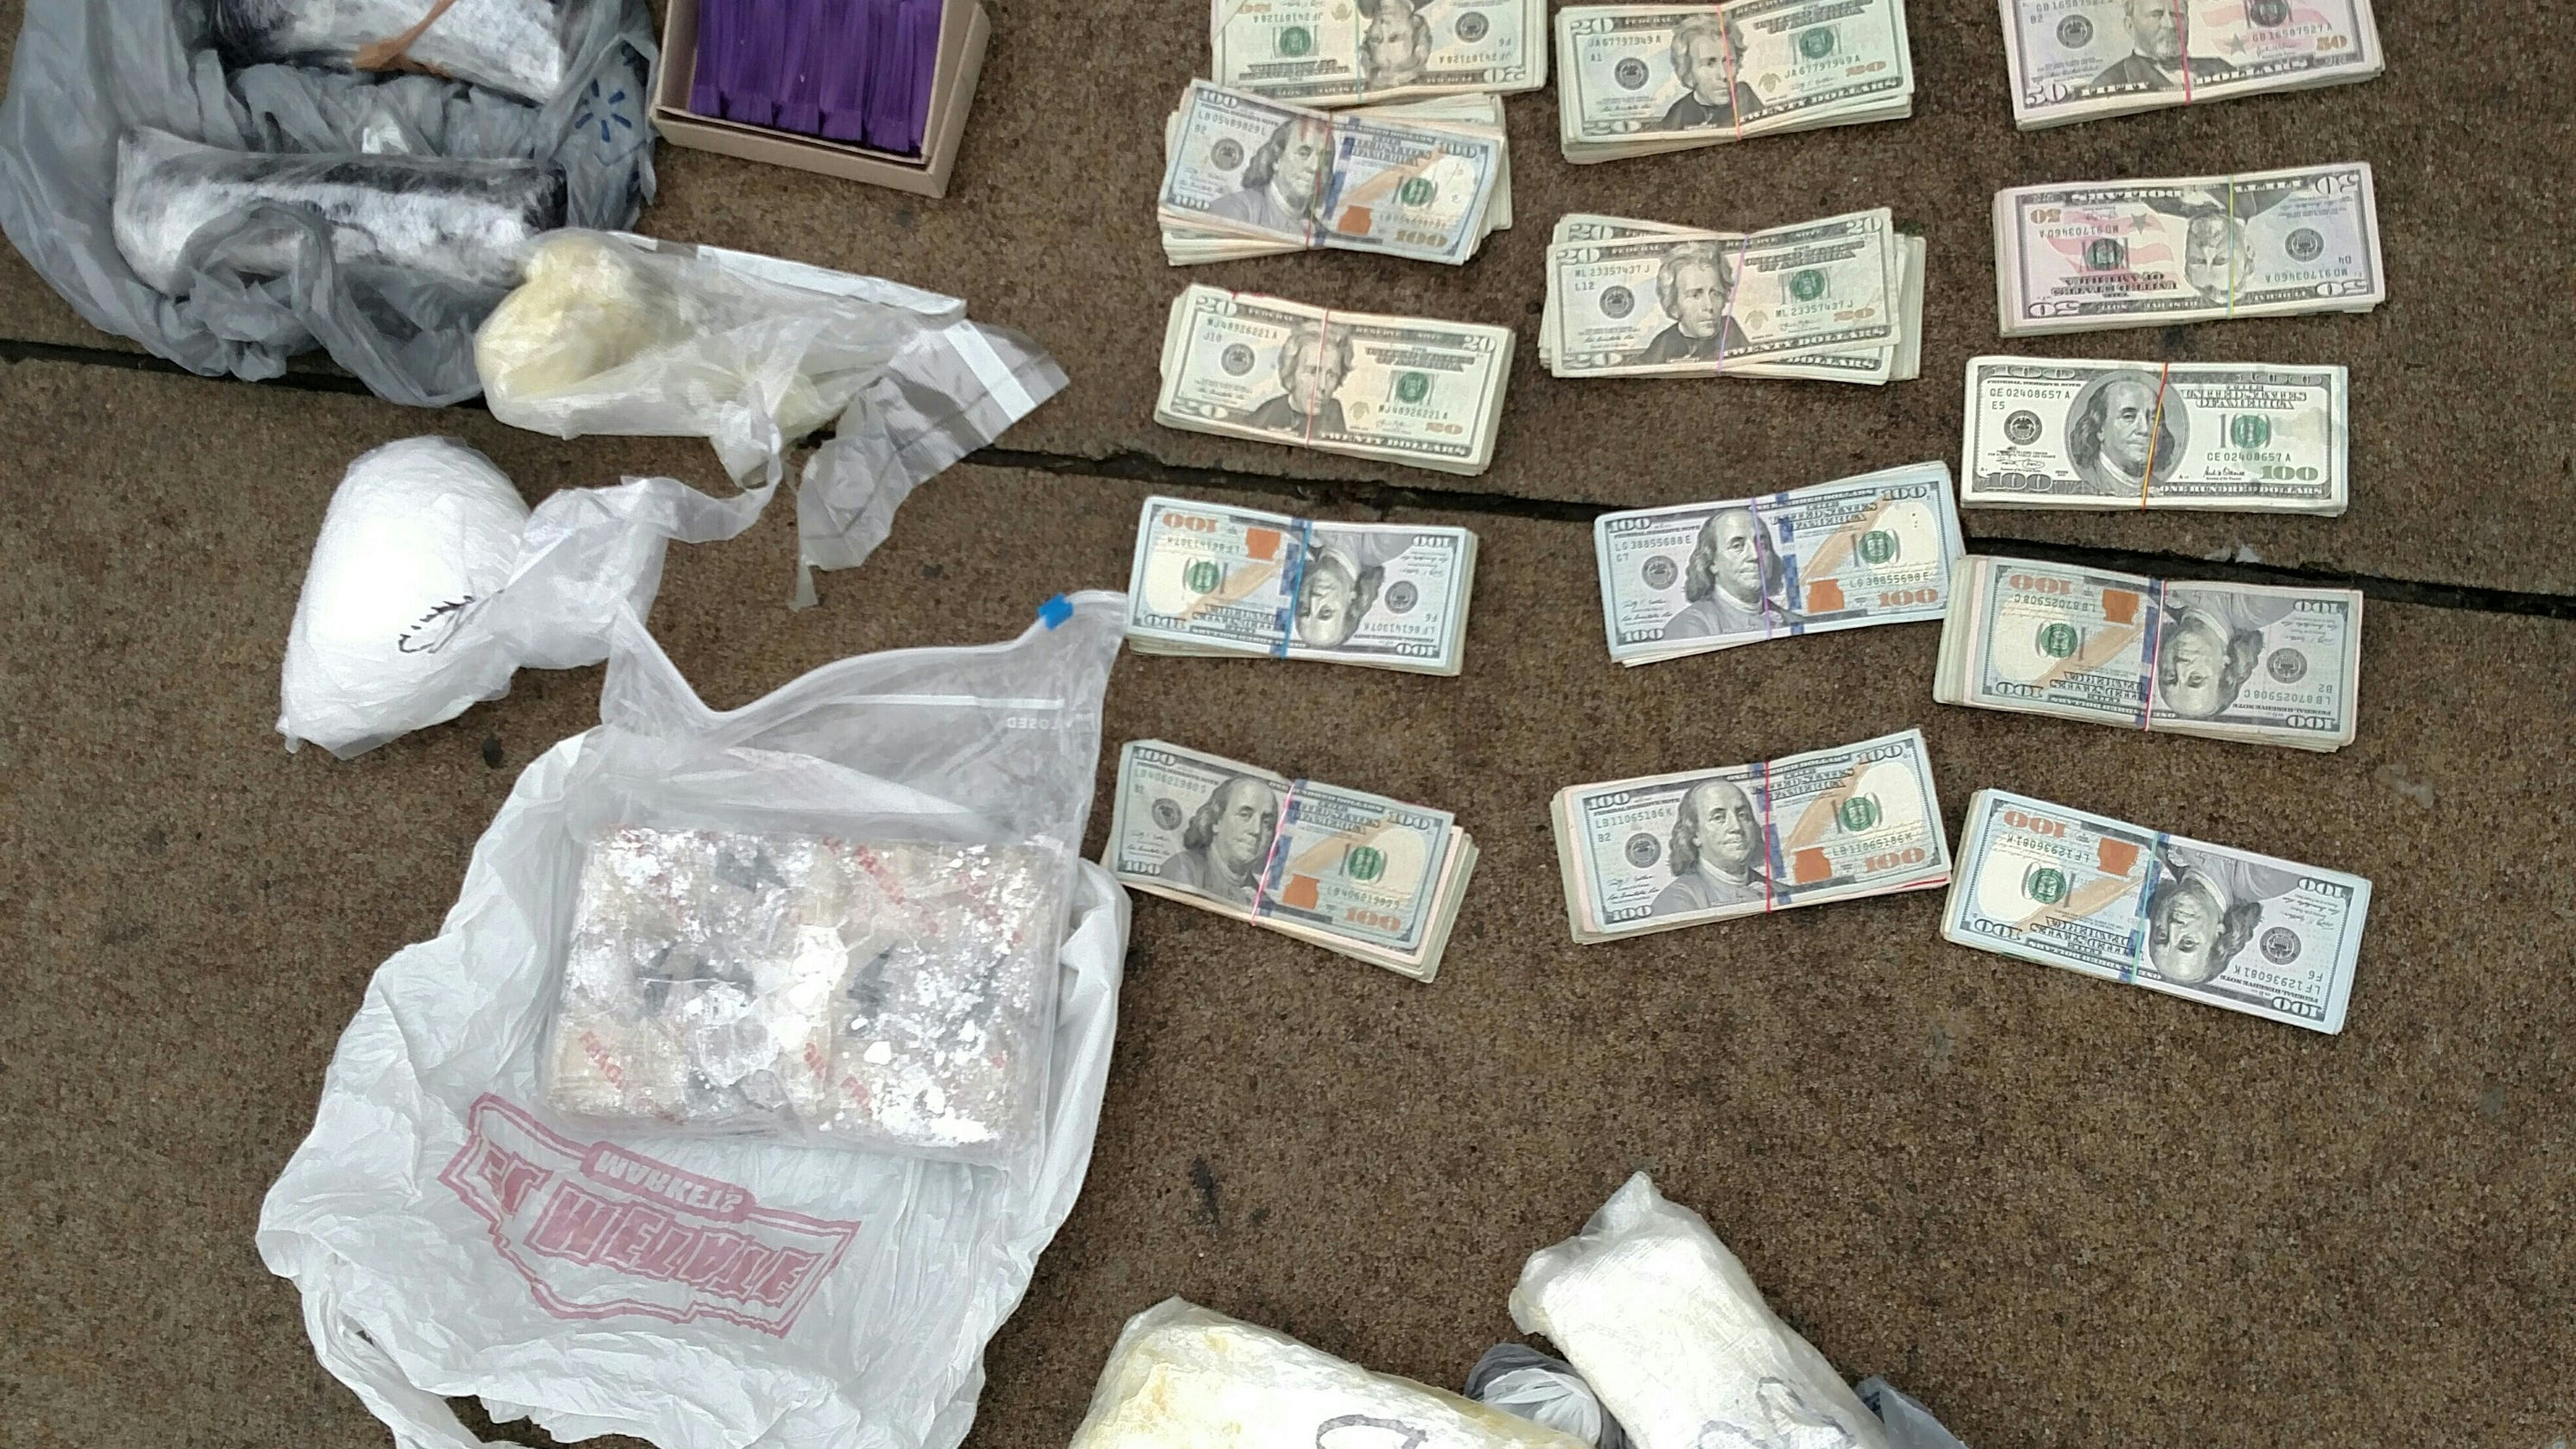 Major drug raid in Deposit: Heroin, fentanyl, meth seized by